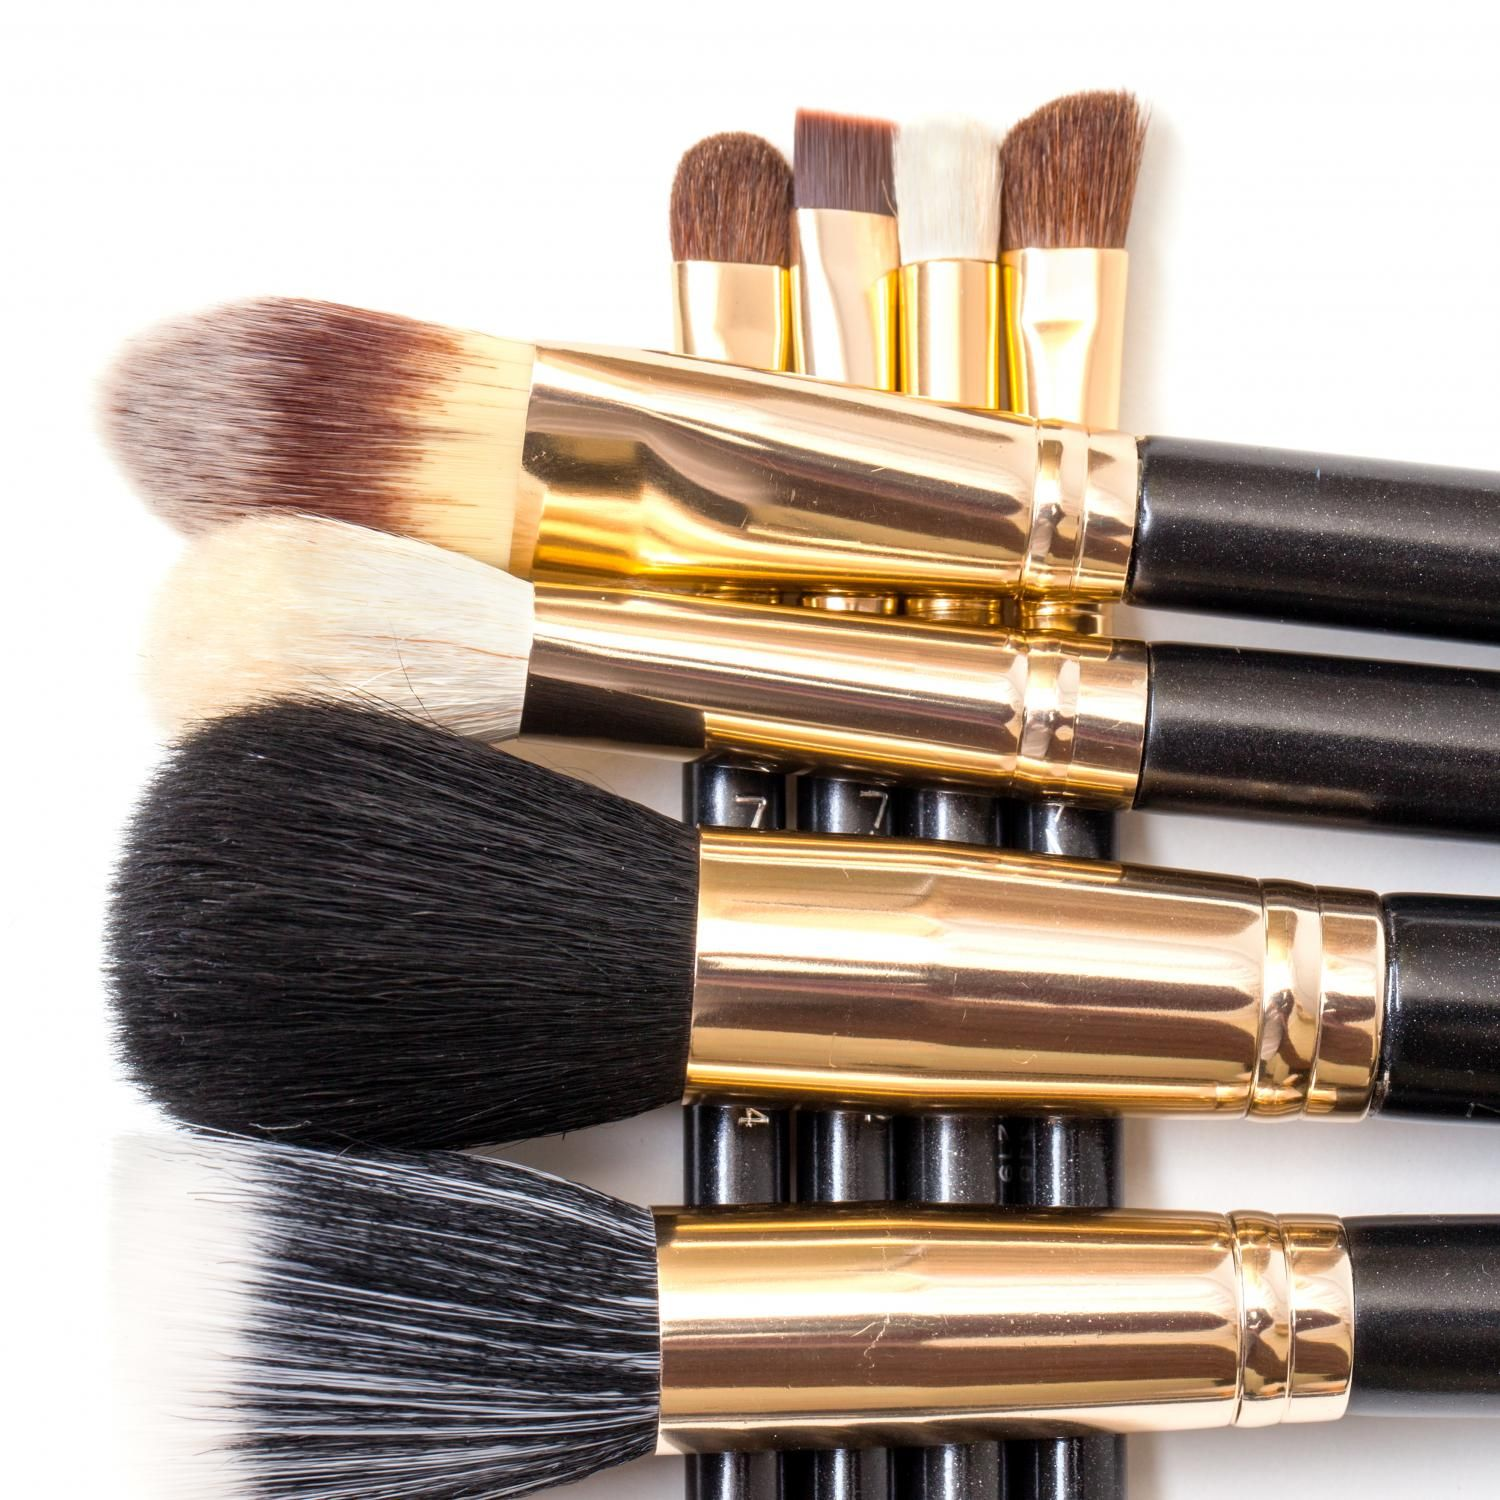 How To Clean Your Makeup Brushes Top makeup products